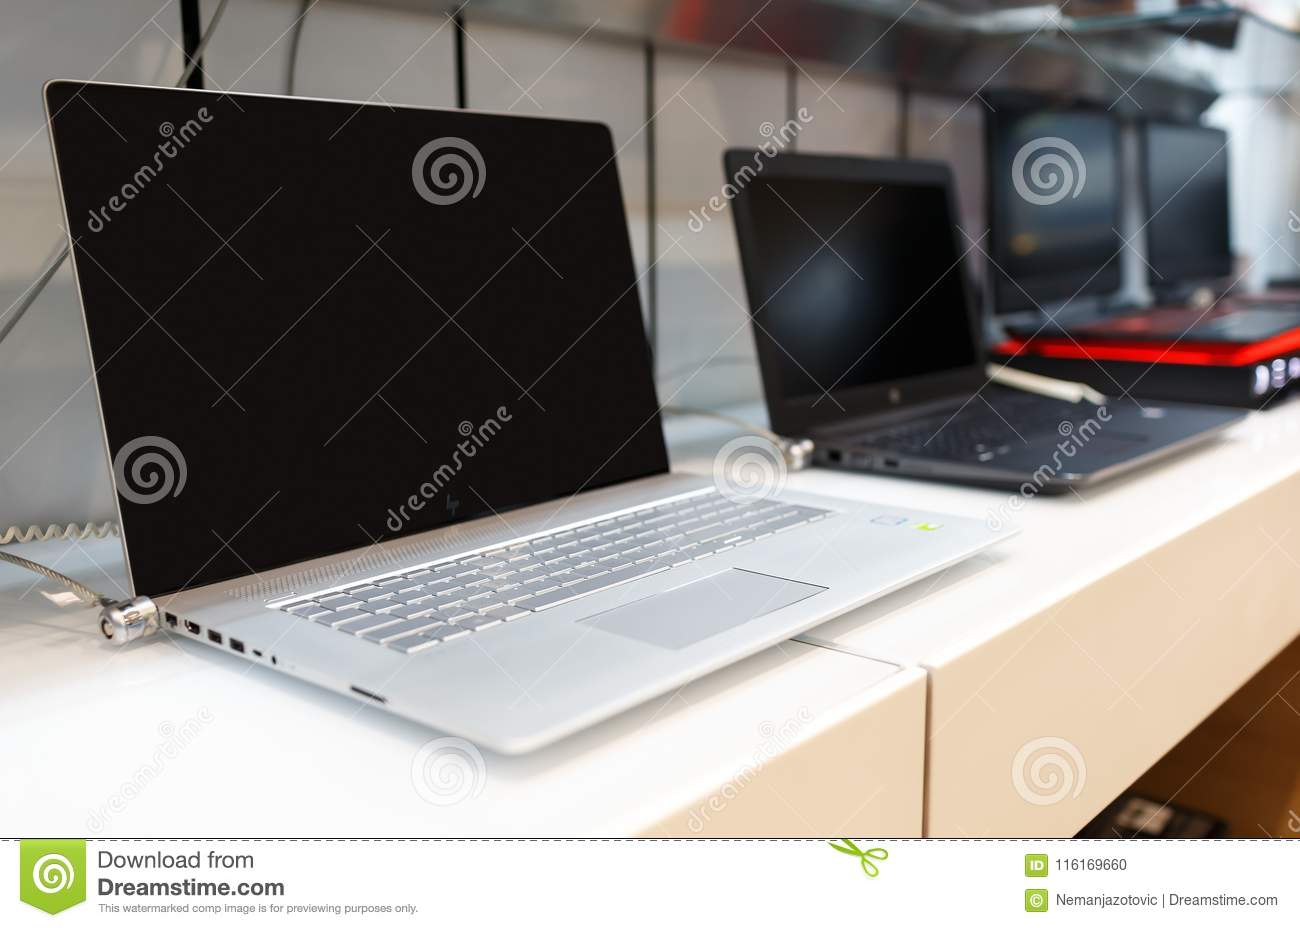 New HP Laptop Computers Displayed In Electronic Store